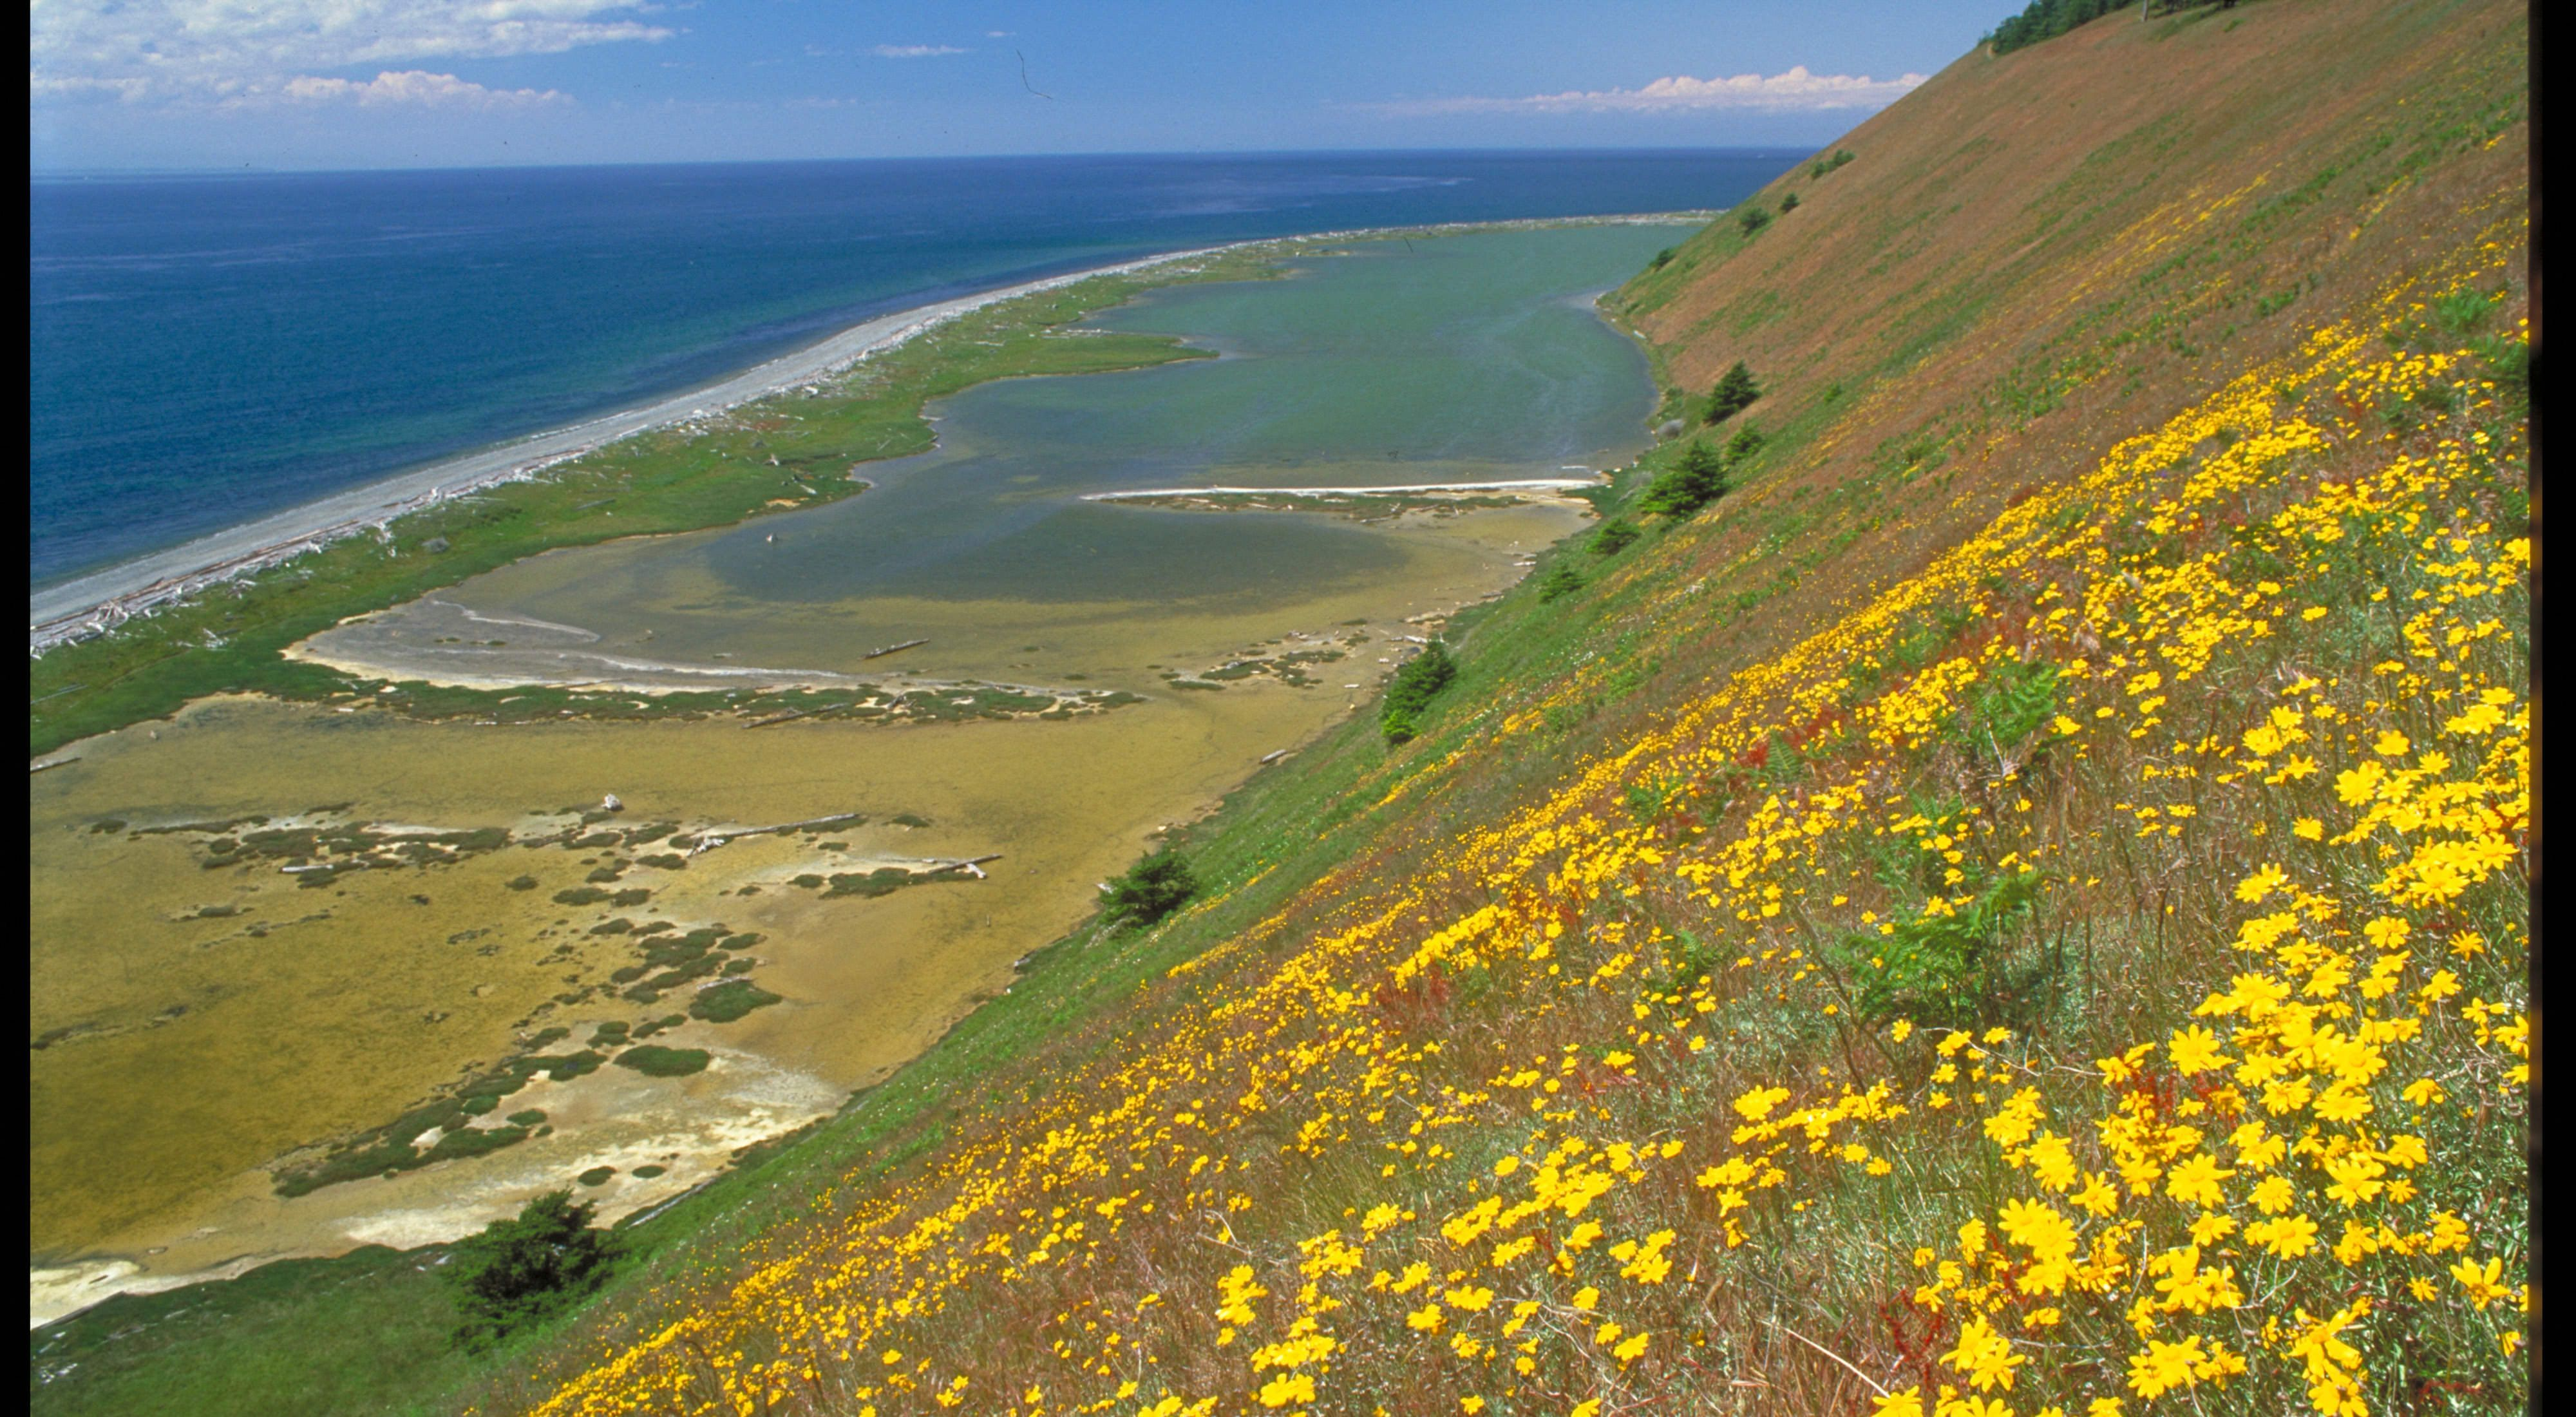 Perego's Lagoon viewed from bluff at Ebey's Landing. Yellow flower is Oregon sunshine.